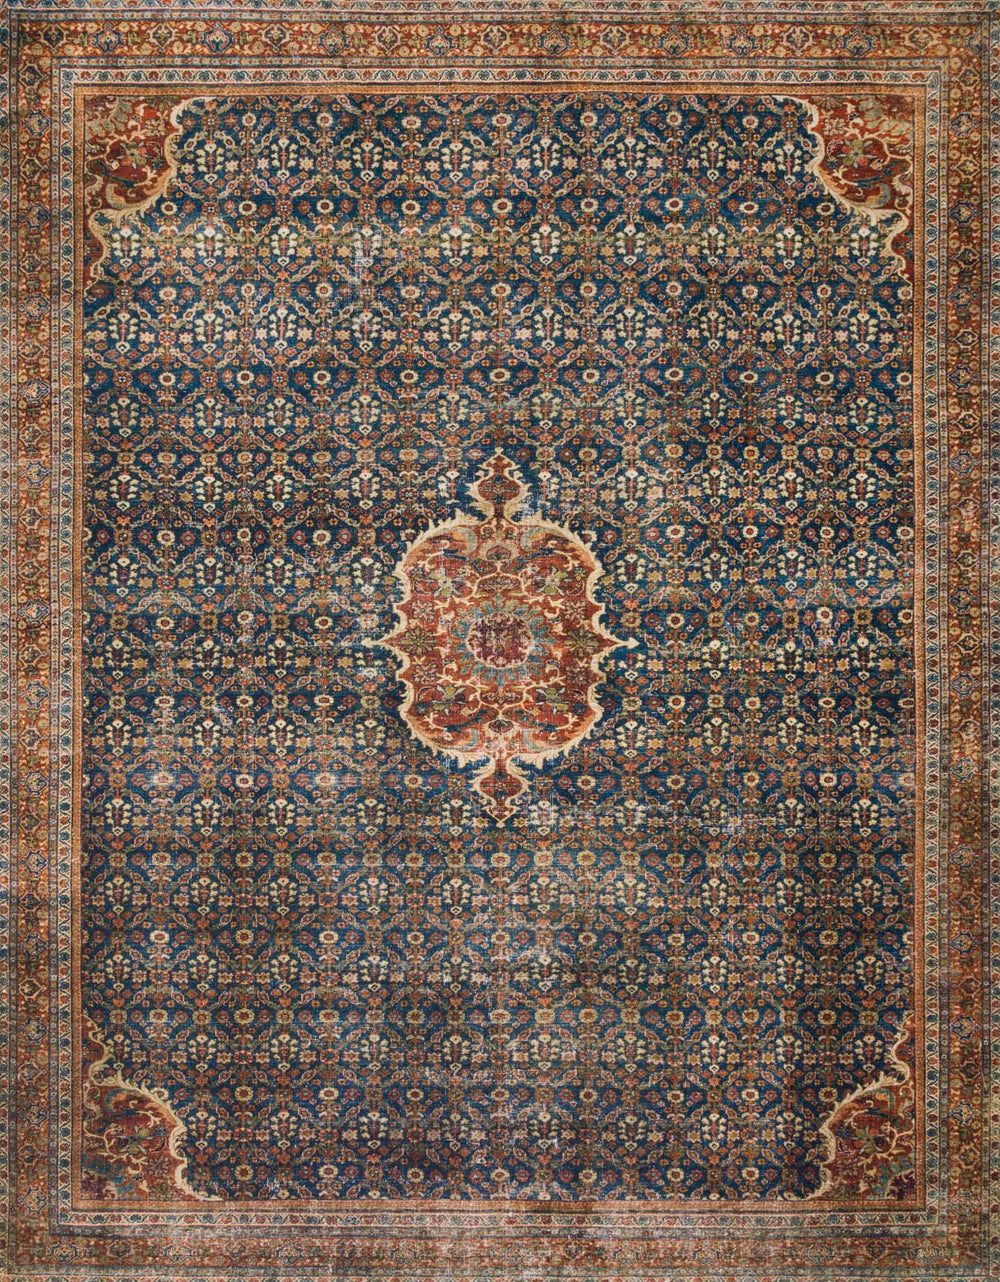 The Layla Collection is traditional and timeless, with a beautiful lived-in design that captures the spirit of an old-world rug. This traditional power-loomed rug is crafted in China of 100% polyester with a classic and sophisticated color palette and subtle patina.  Power Loomed 100% Polyester LAY-09 Cobalt Blue/Spice